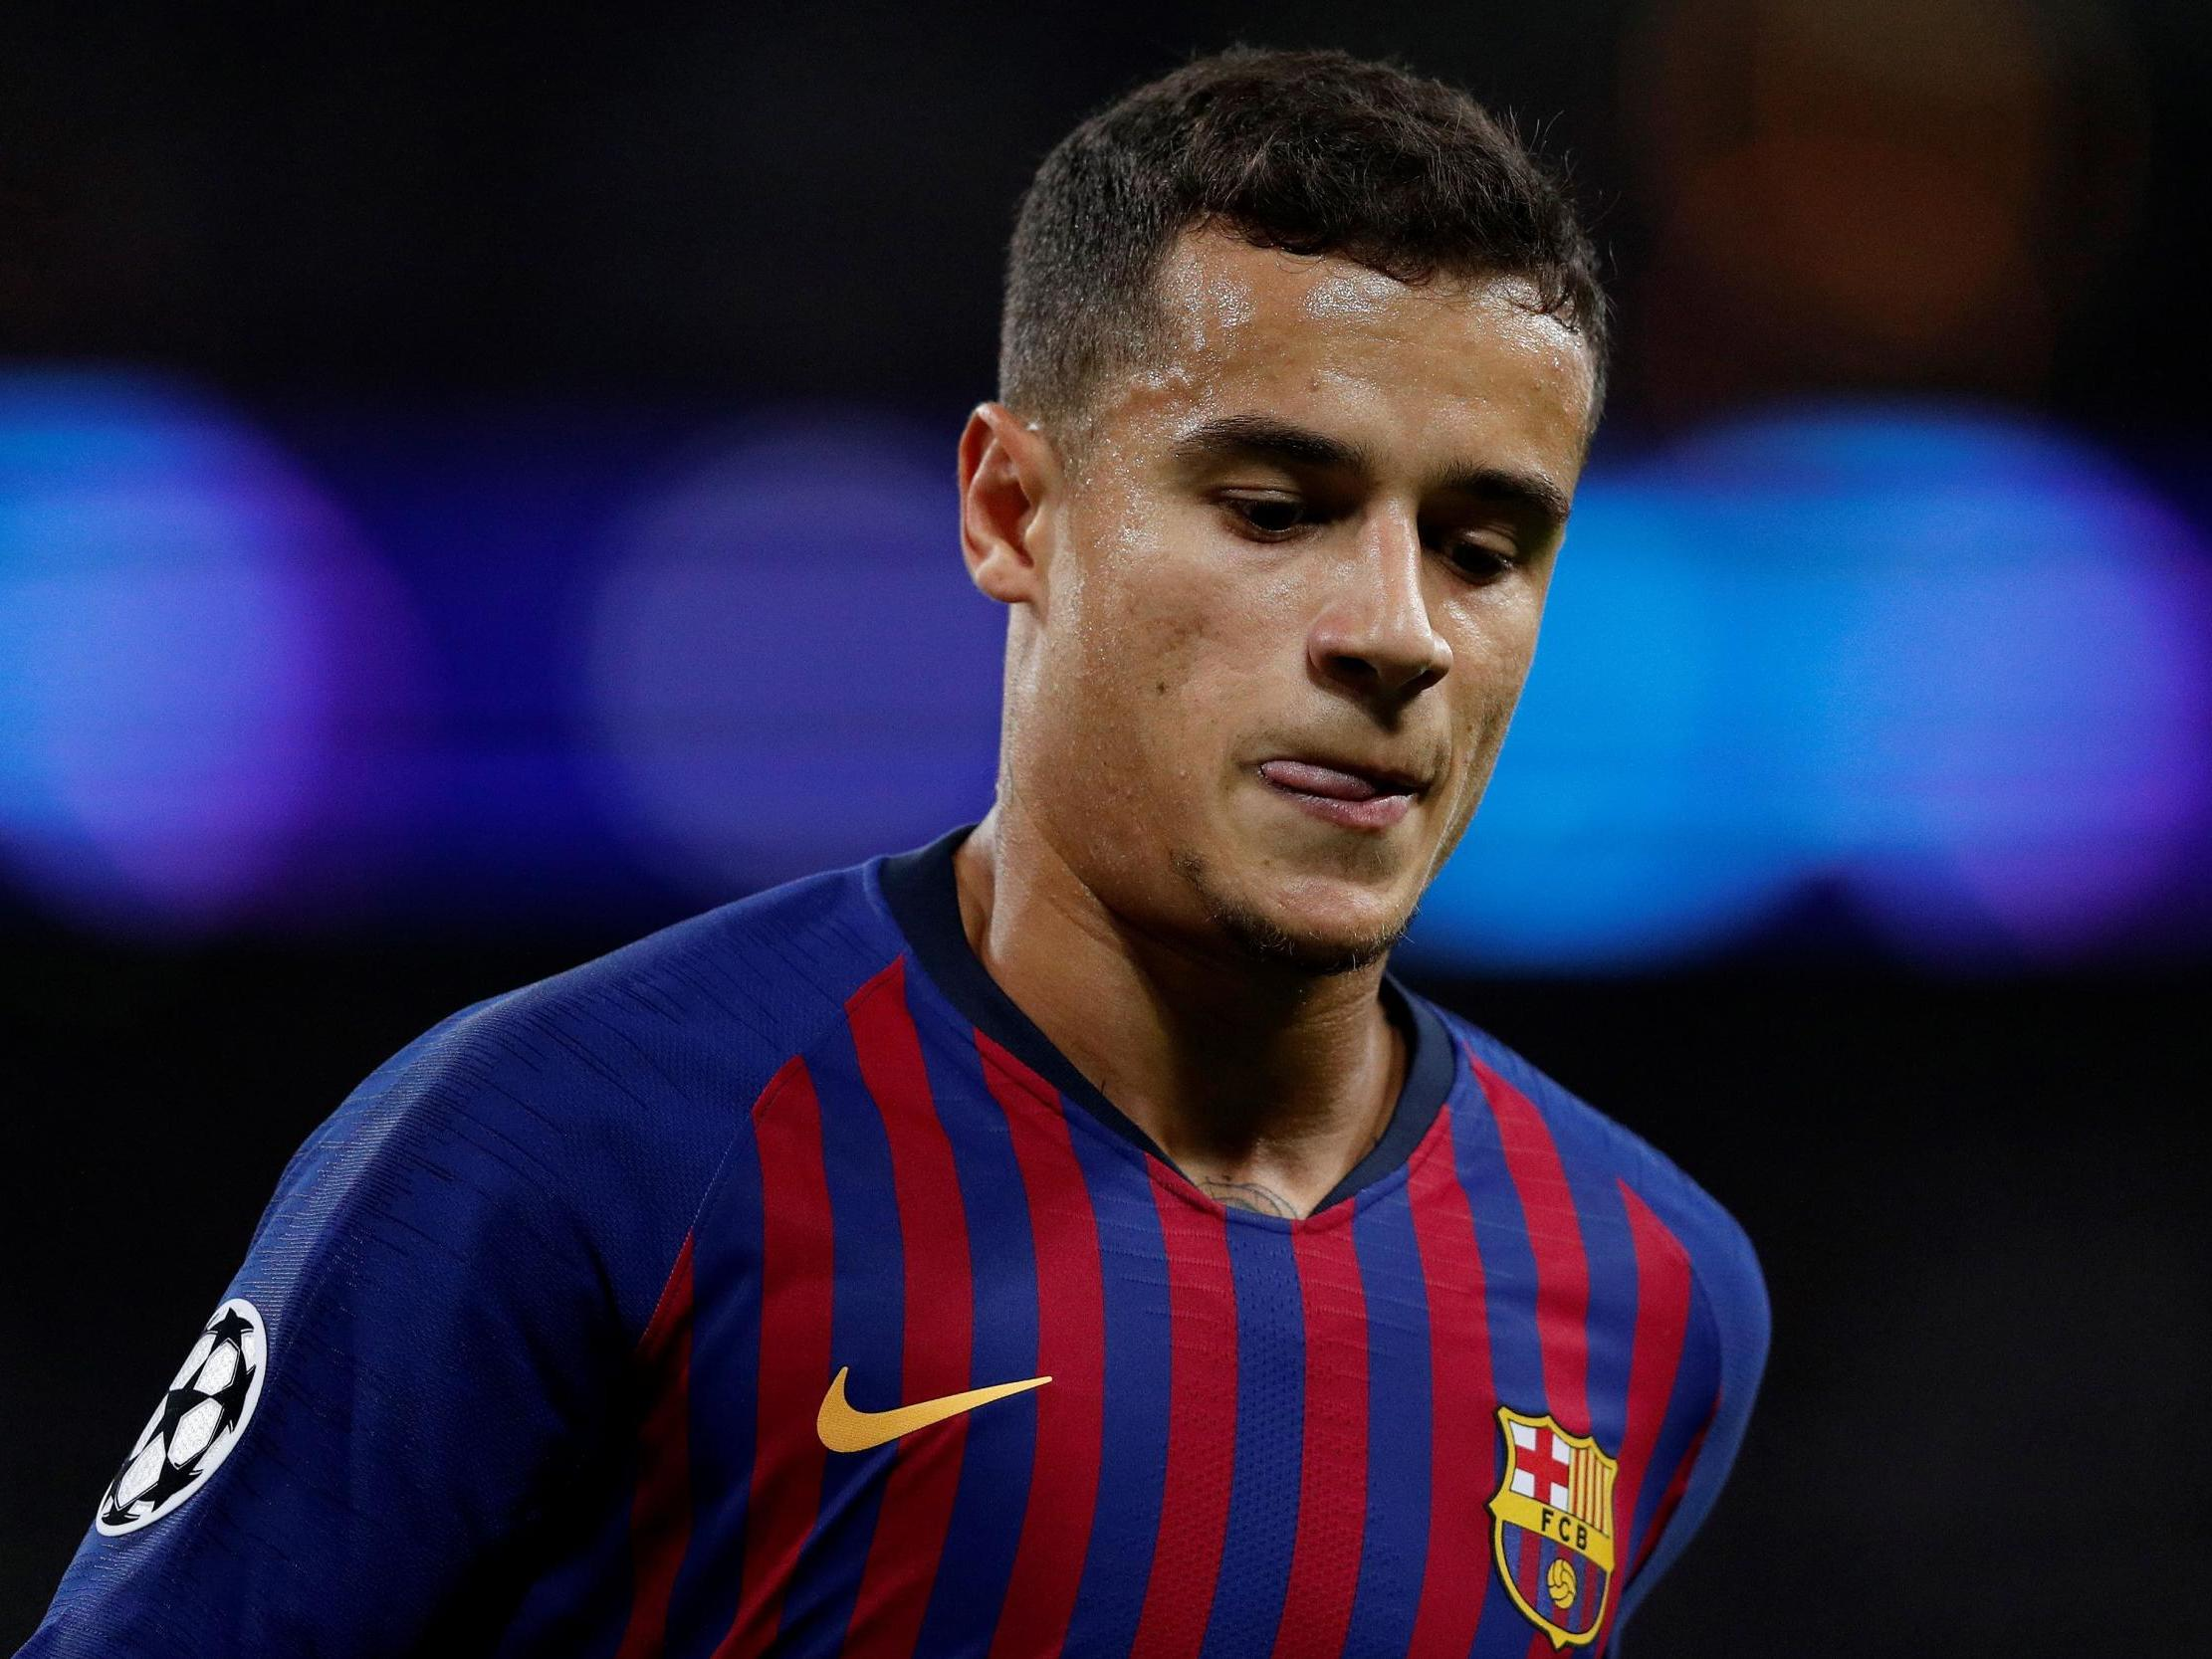 Chelsea monitoring Coutinho situation as Hazard edges closer to exit 55c34e51546